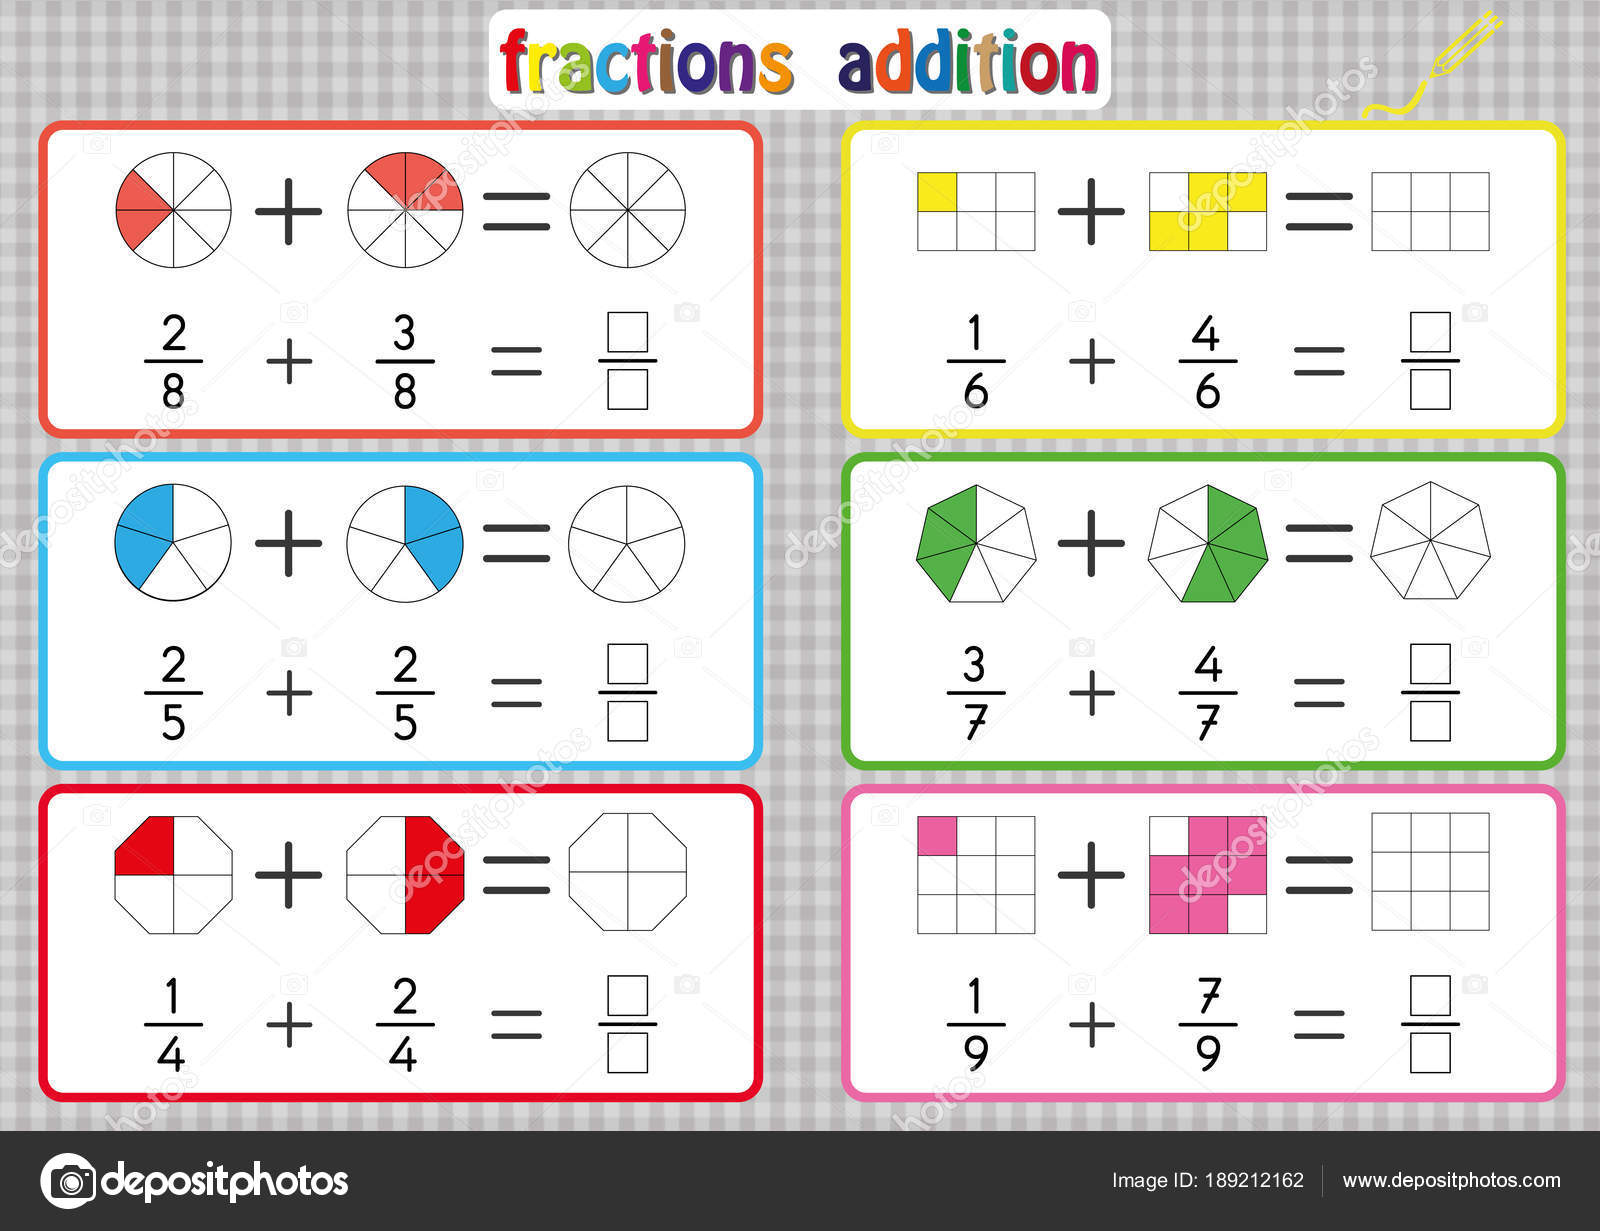 Fractions Addition, Printable Fractions Worksheets For